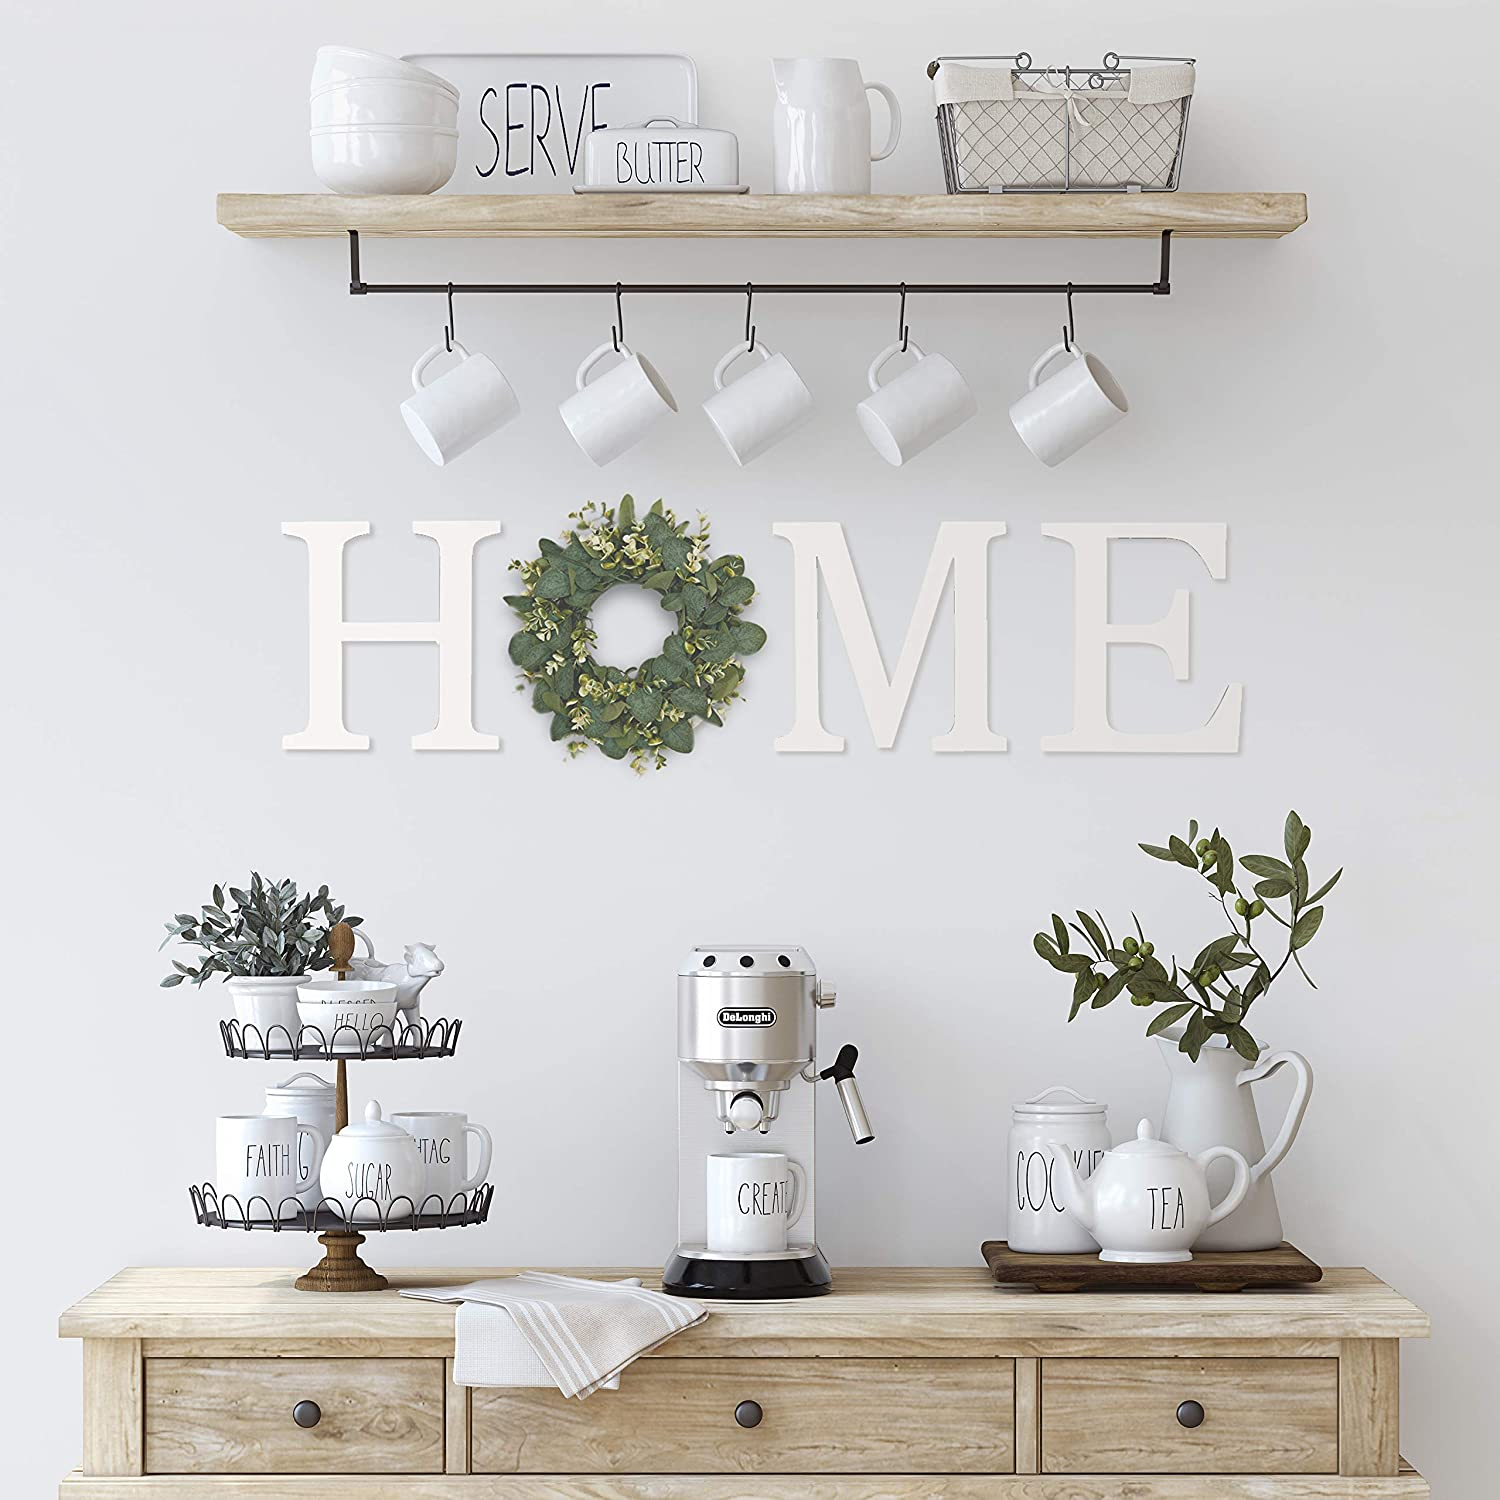 Hanging Home Letters for Wall, Farmhouse Signs for Home Decor Wall Display, Large Letters for Wall Decor with Wreath, Rustic Home Wall Decor with Wreath Cutouts (White)